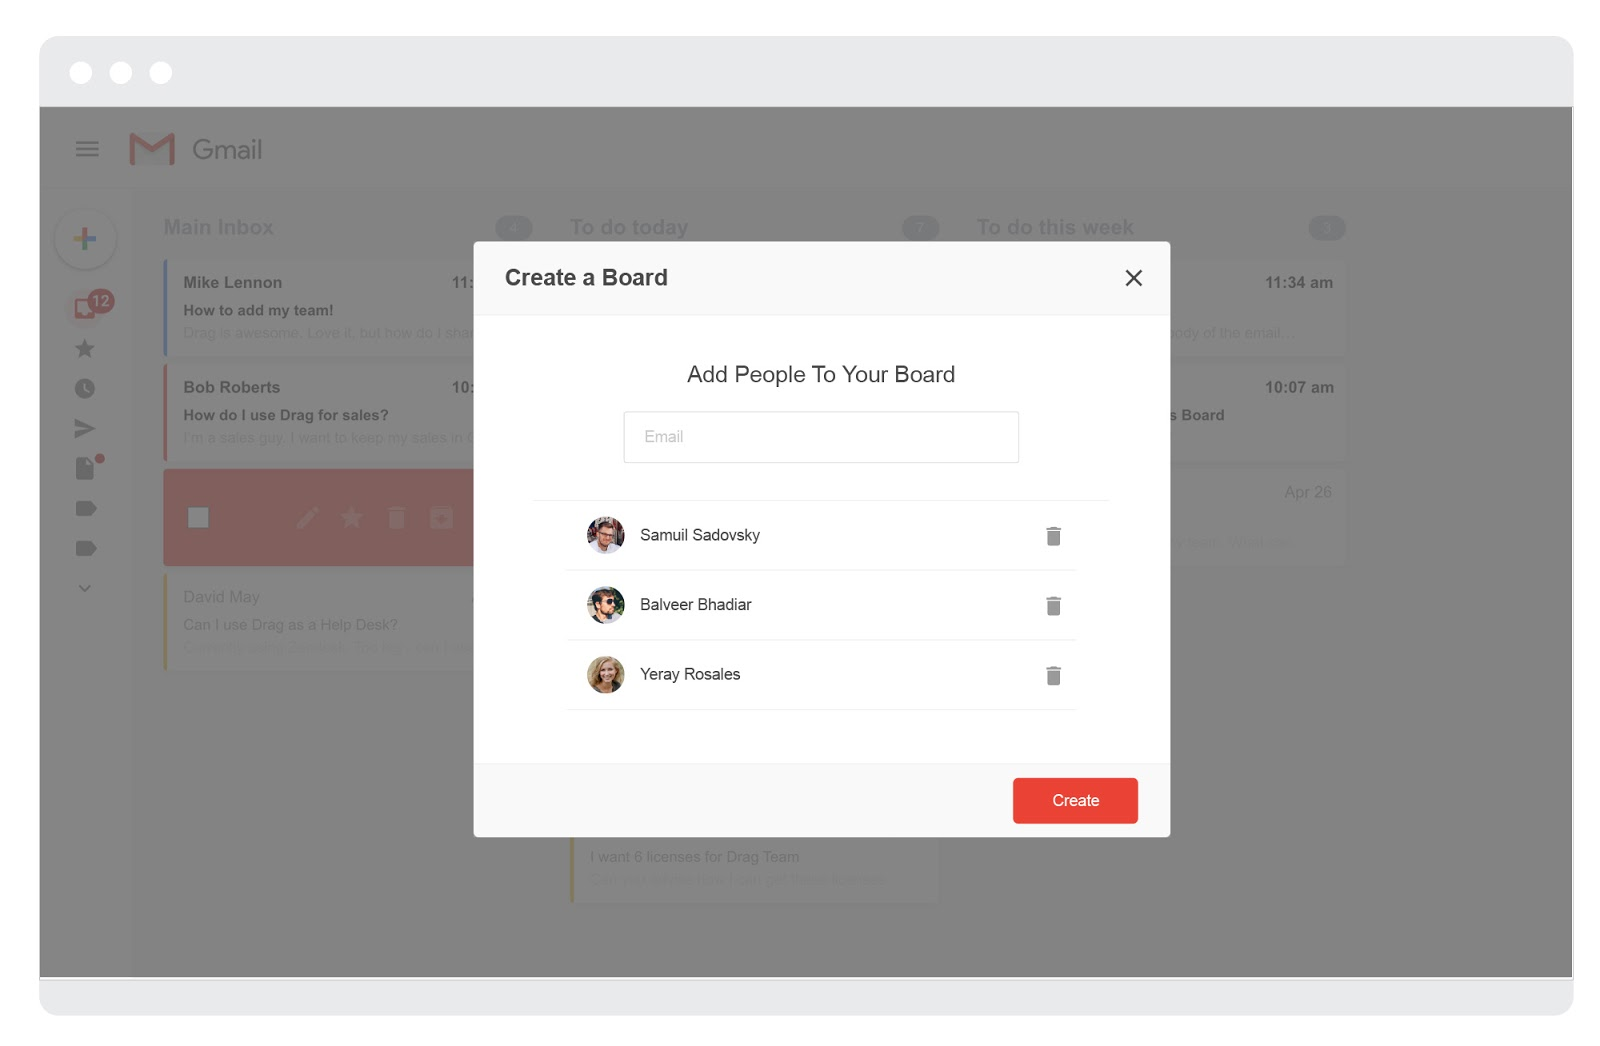 Drag adding people to boards screenshot